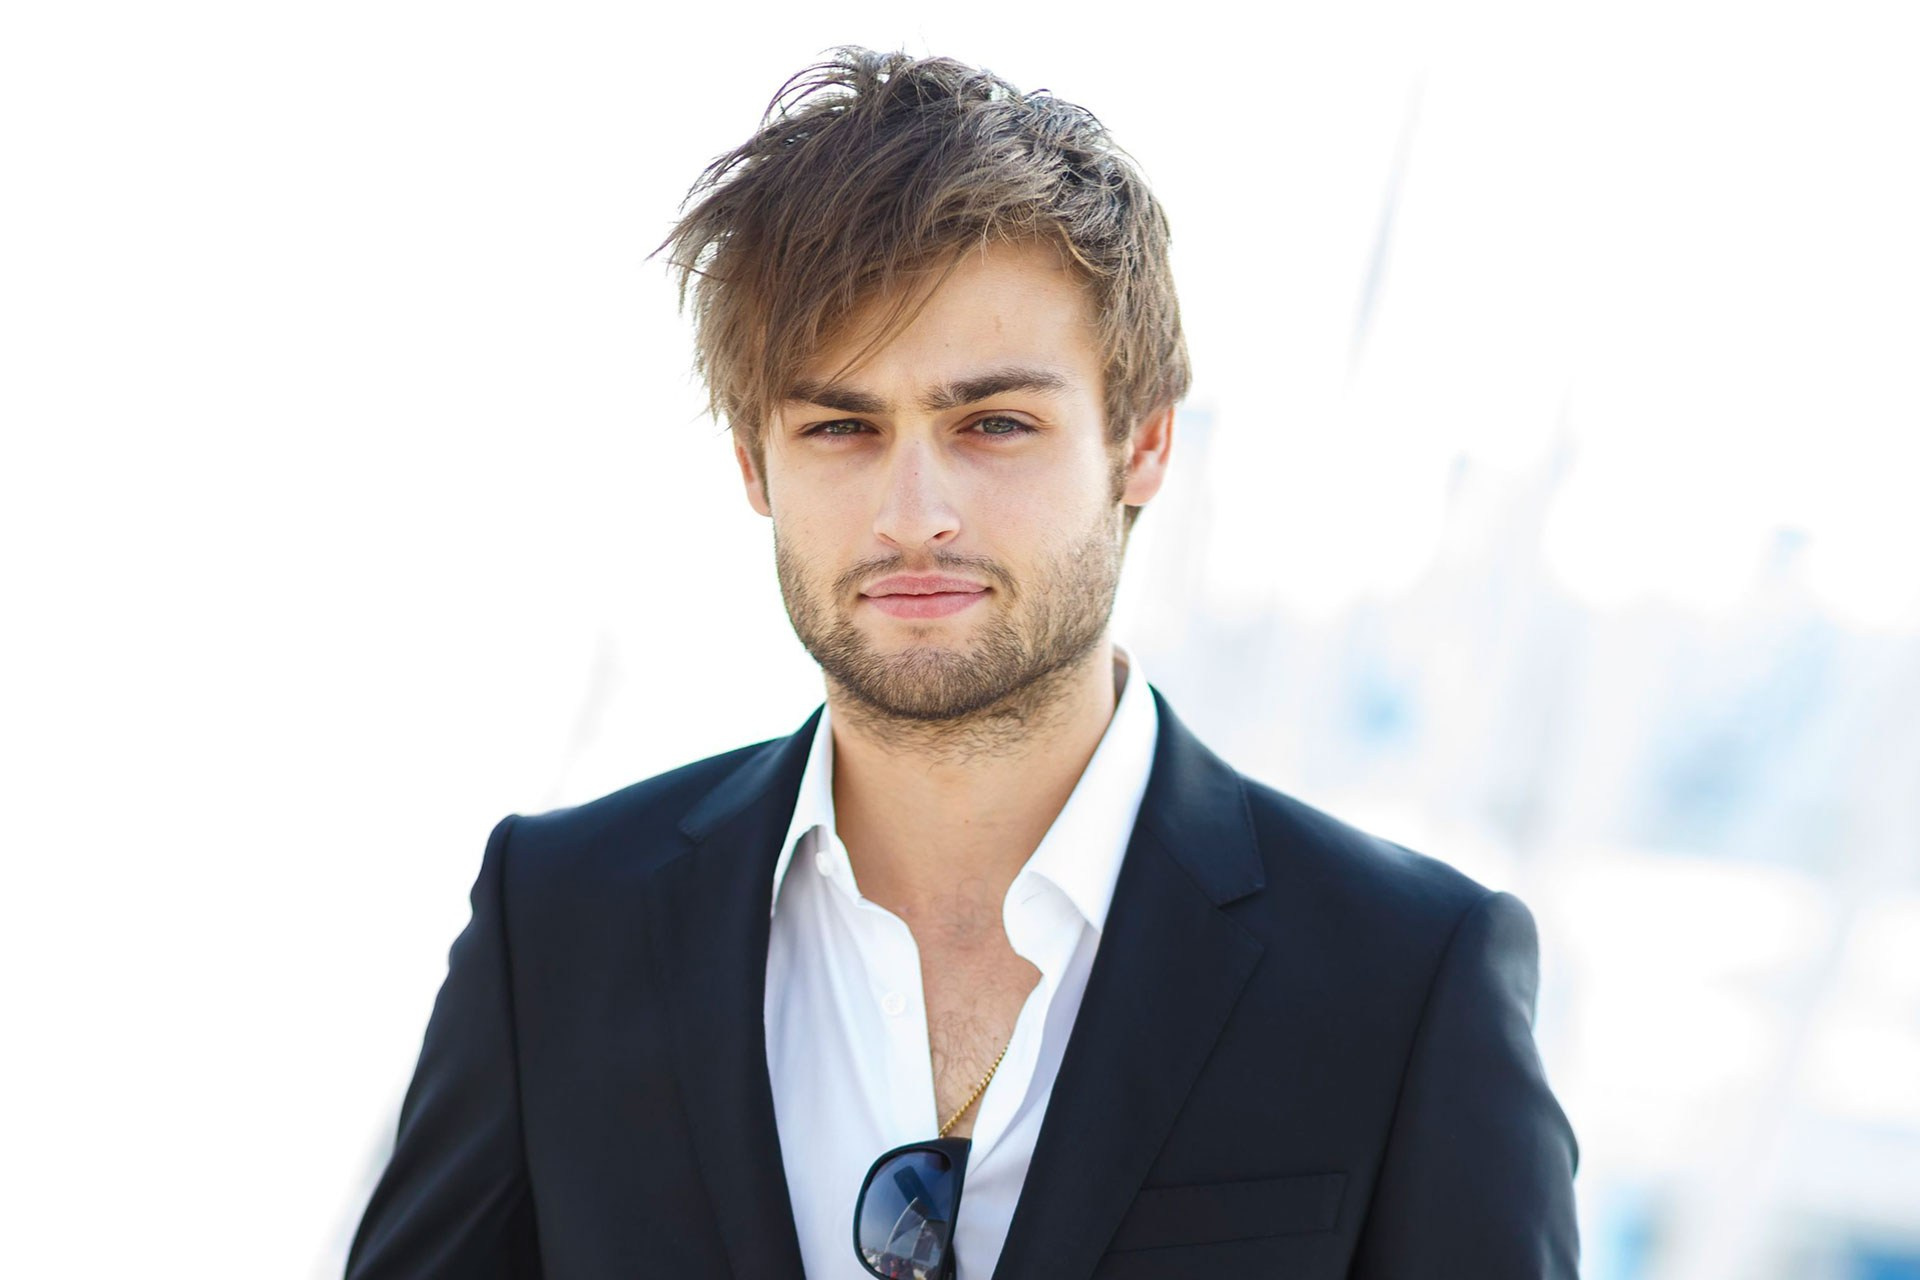 1920x1280 - Douglas Booth Wallpapers 14